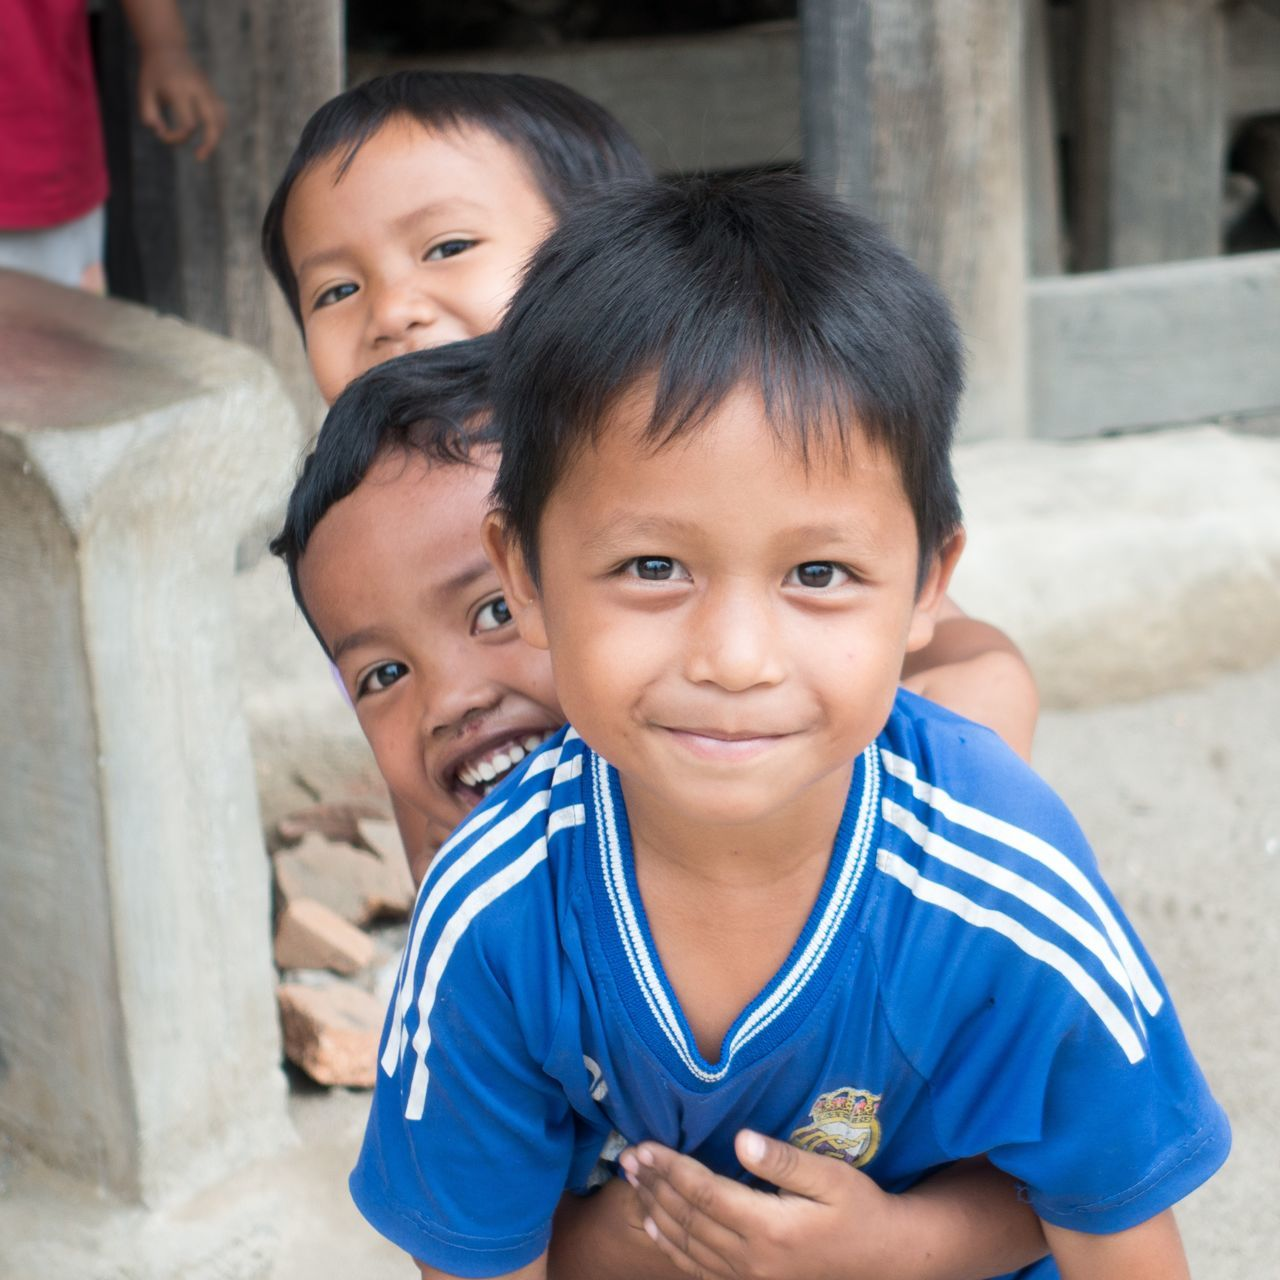 Child Smiling Boys Childhood Happiness People Portrait Children Only INDONESIA